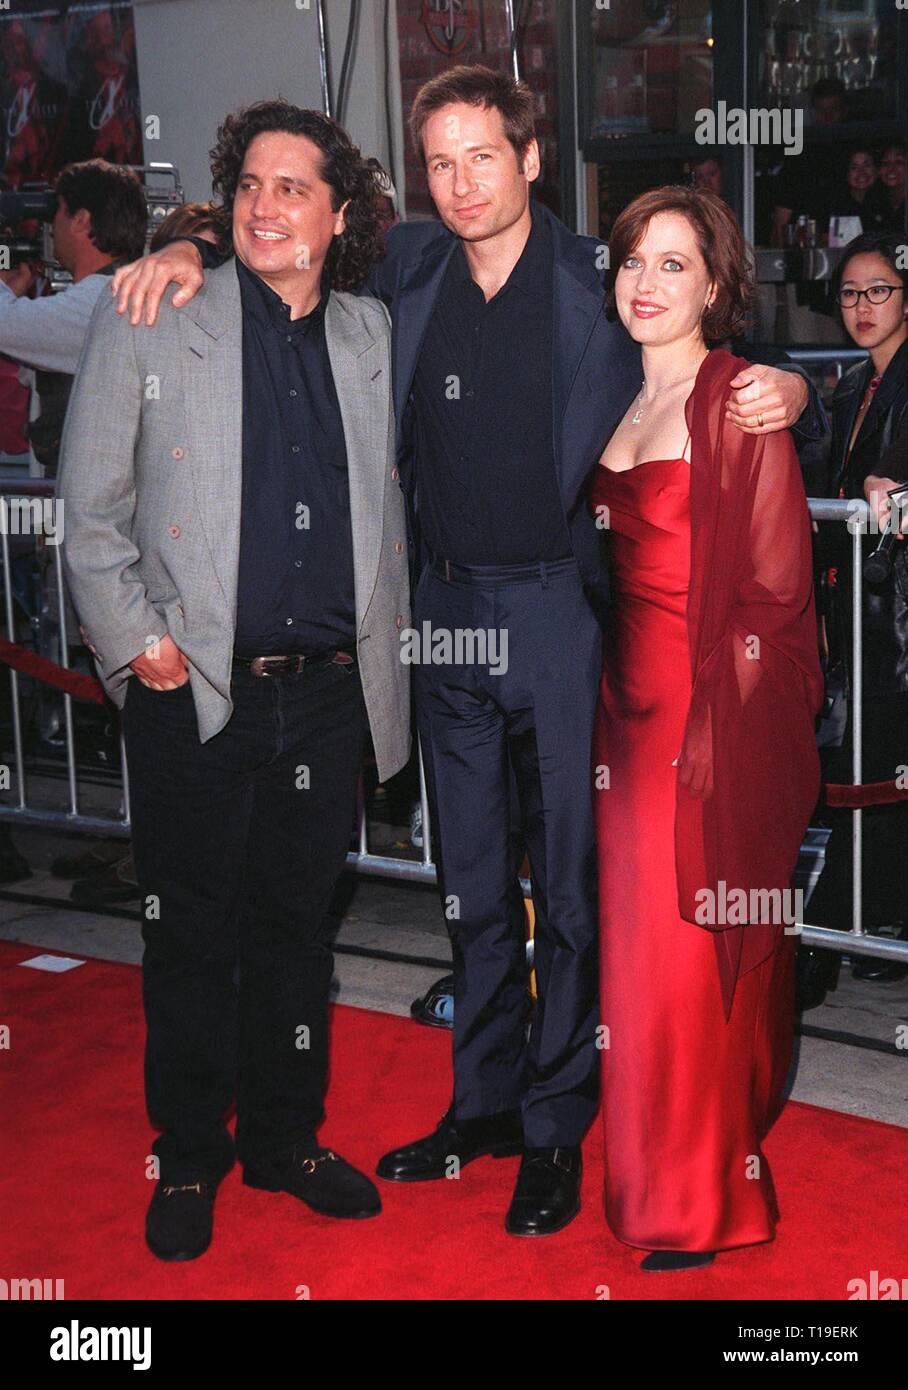 LOS ANGELES, CA - September 8, 2011:  Director ROB BOWMAN (left), actor DAVID DUCHOVNY & actress GILLIAN ANDERSON at the world premiere, in Los Angeles, of their movie 'The X-Files.' - Stock Image